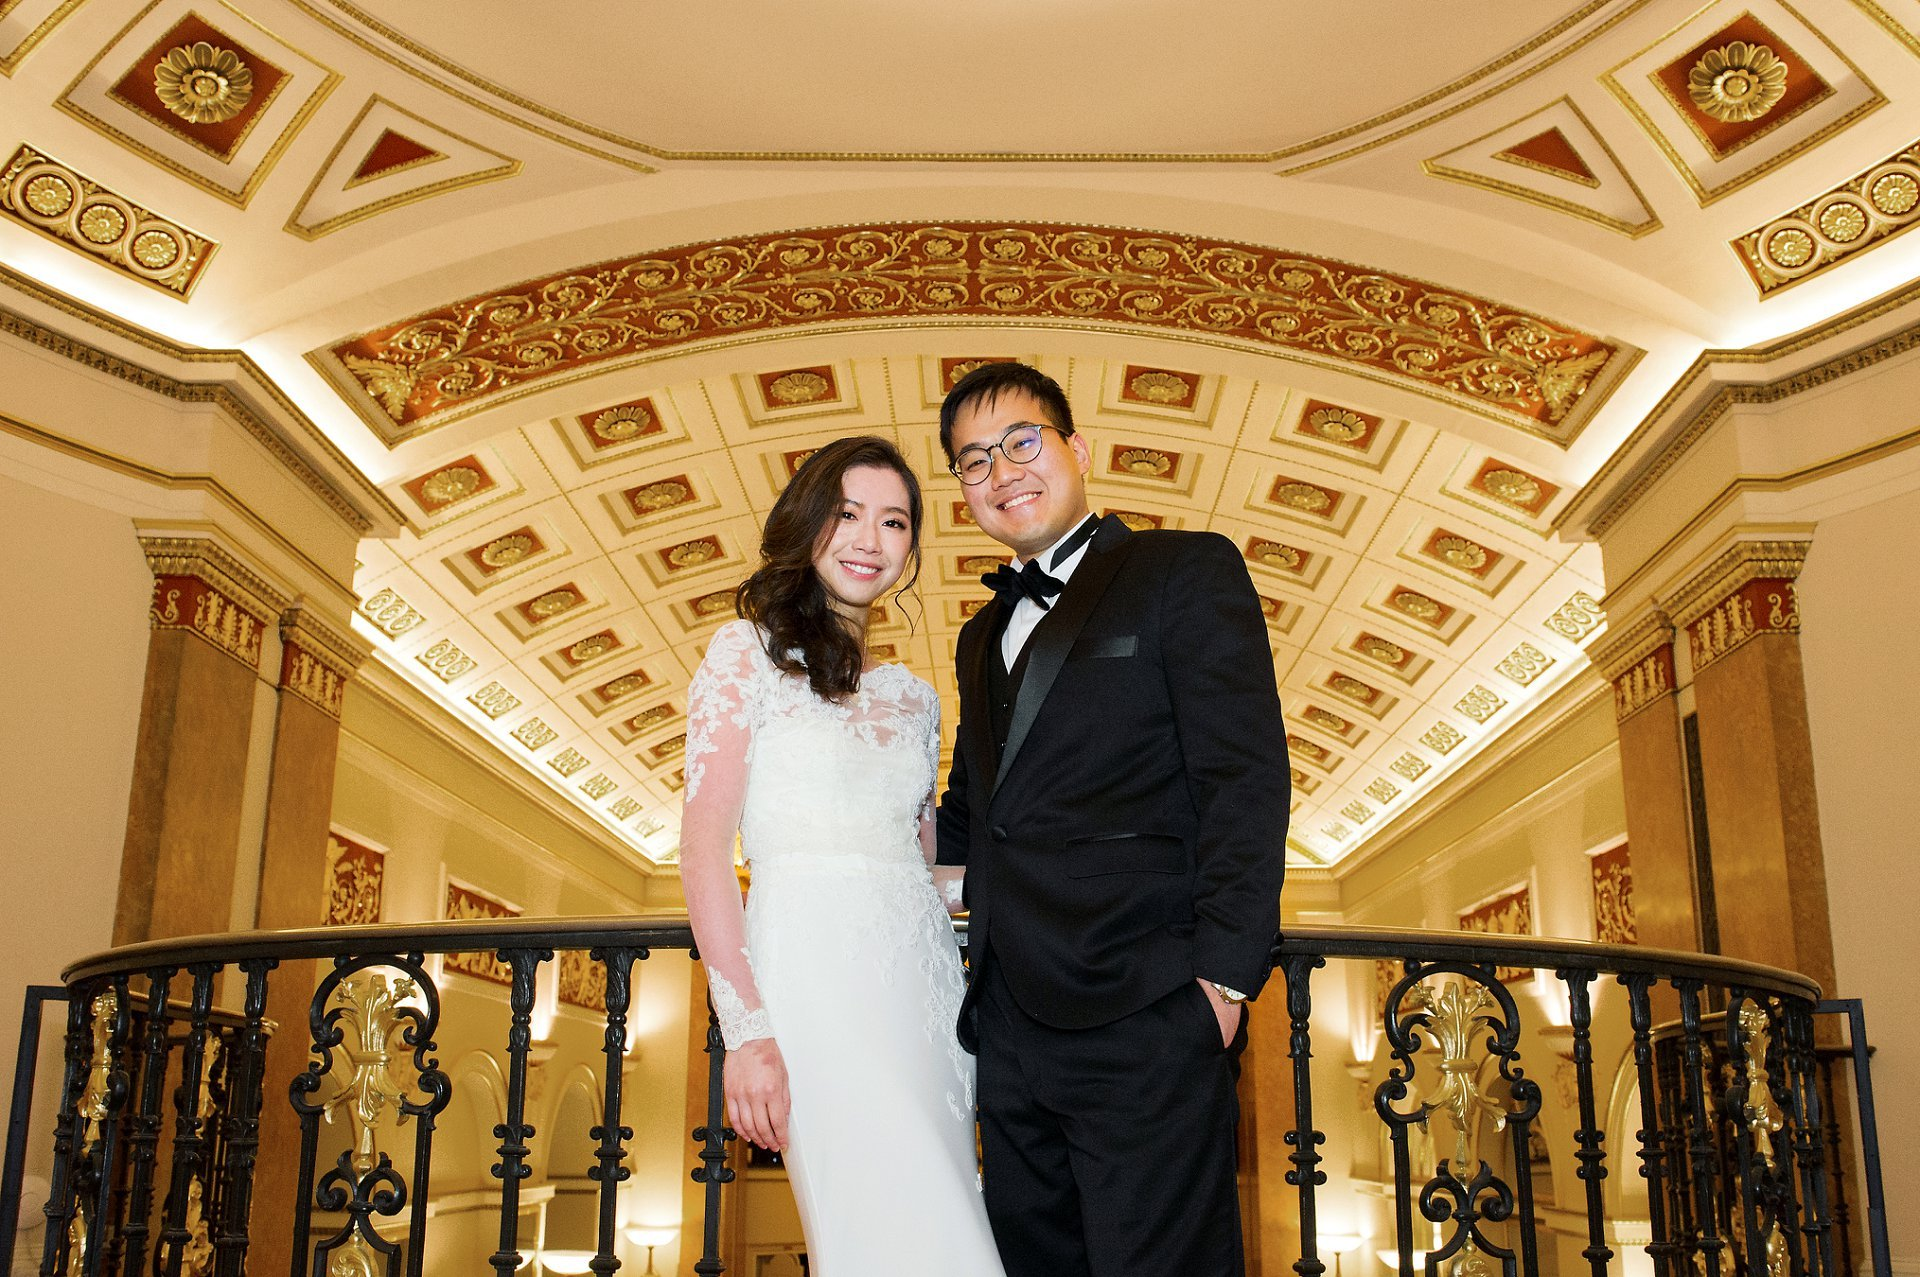 Lansdowne Club wedding photographer bride and groom in gallery with grand ceiling behind them